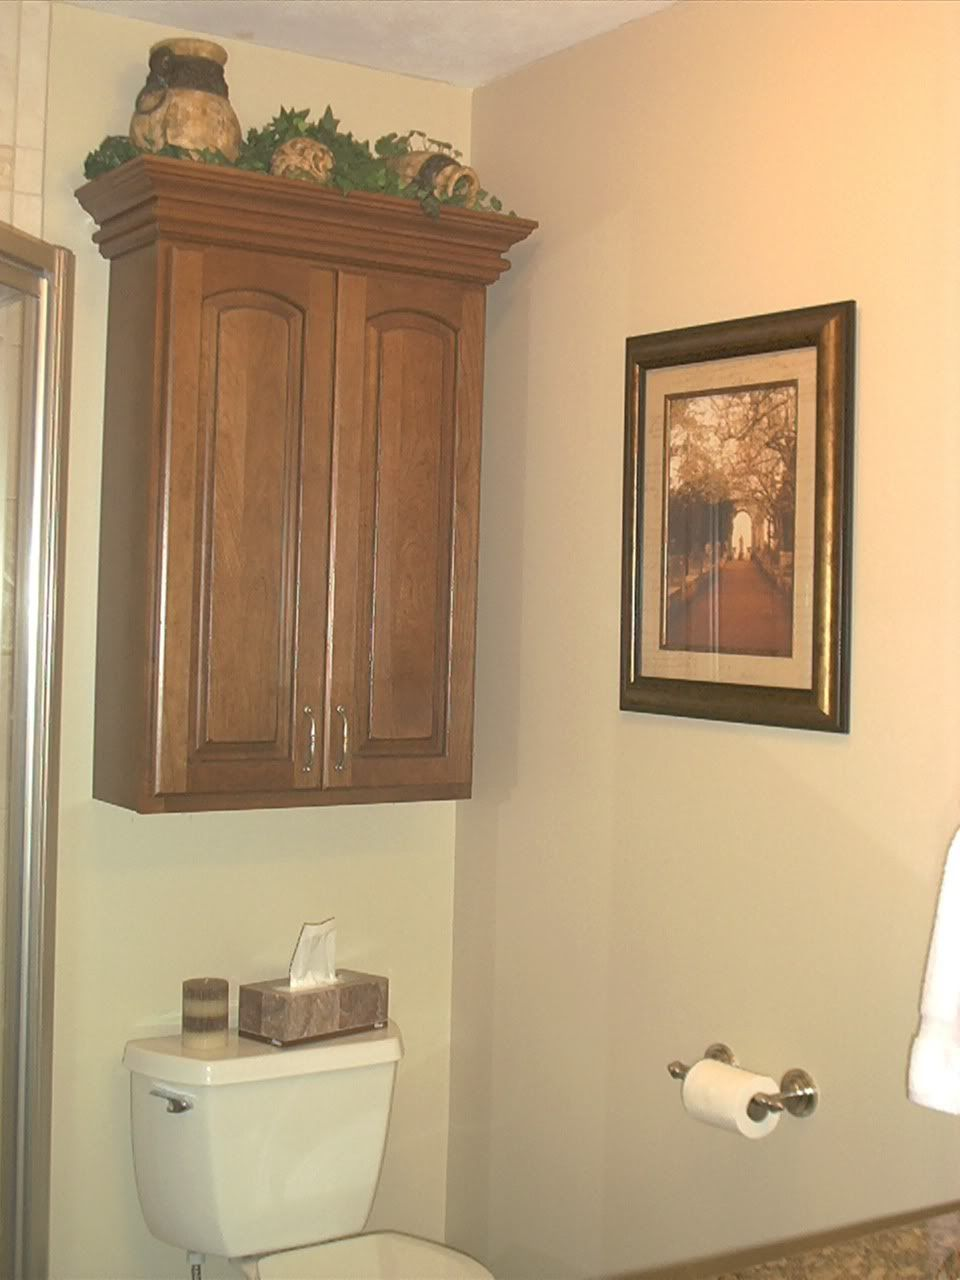 Bathroom storage cabinets over toilet wall cabinet above toilet in water closet toilet room